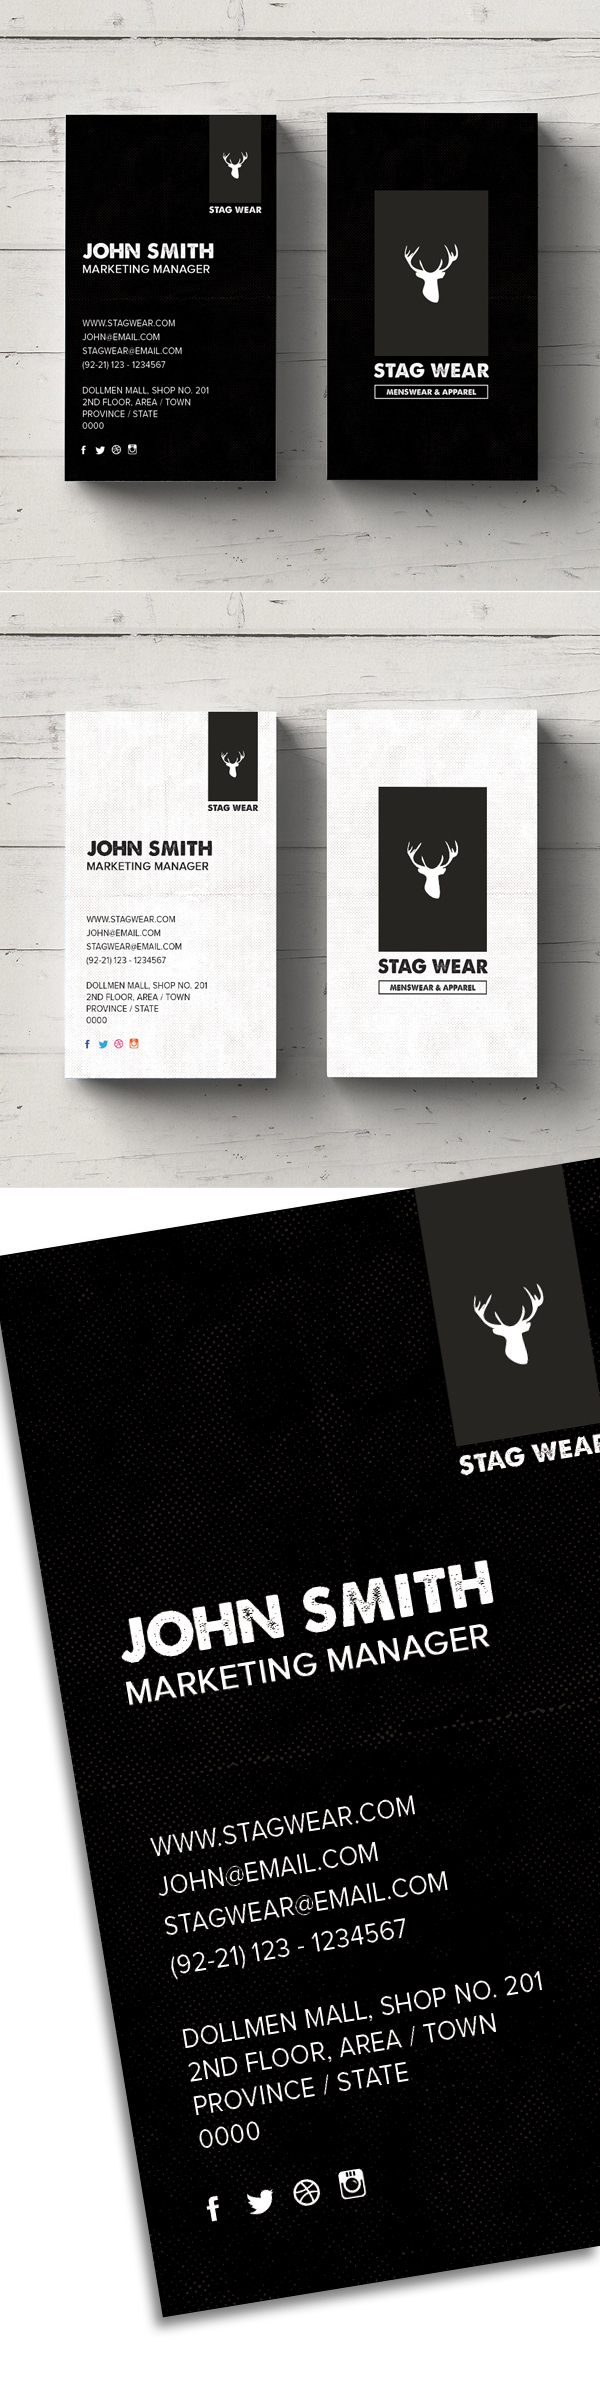 Freebie vertical business card psd template freebies graphic free vertical business card psd template flashek Gallery